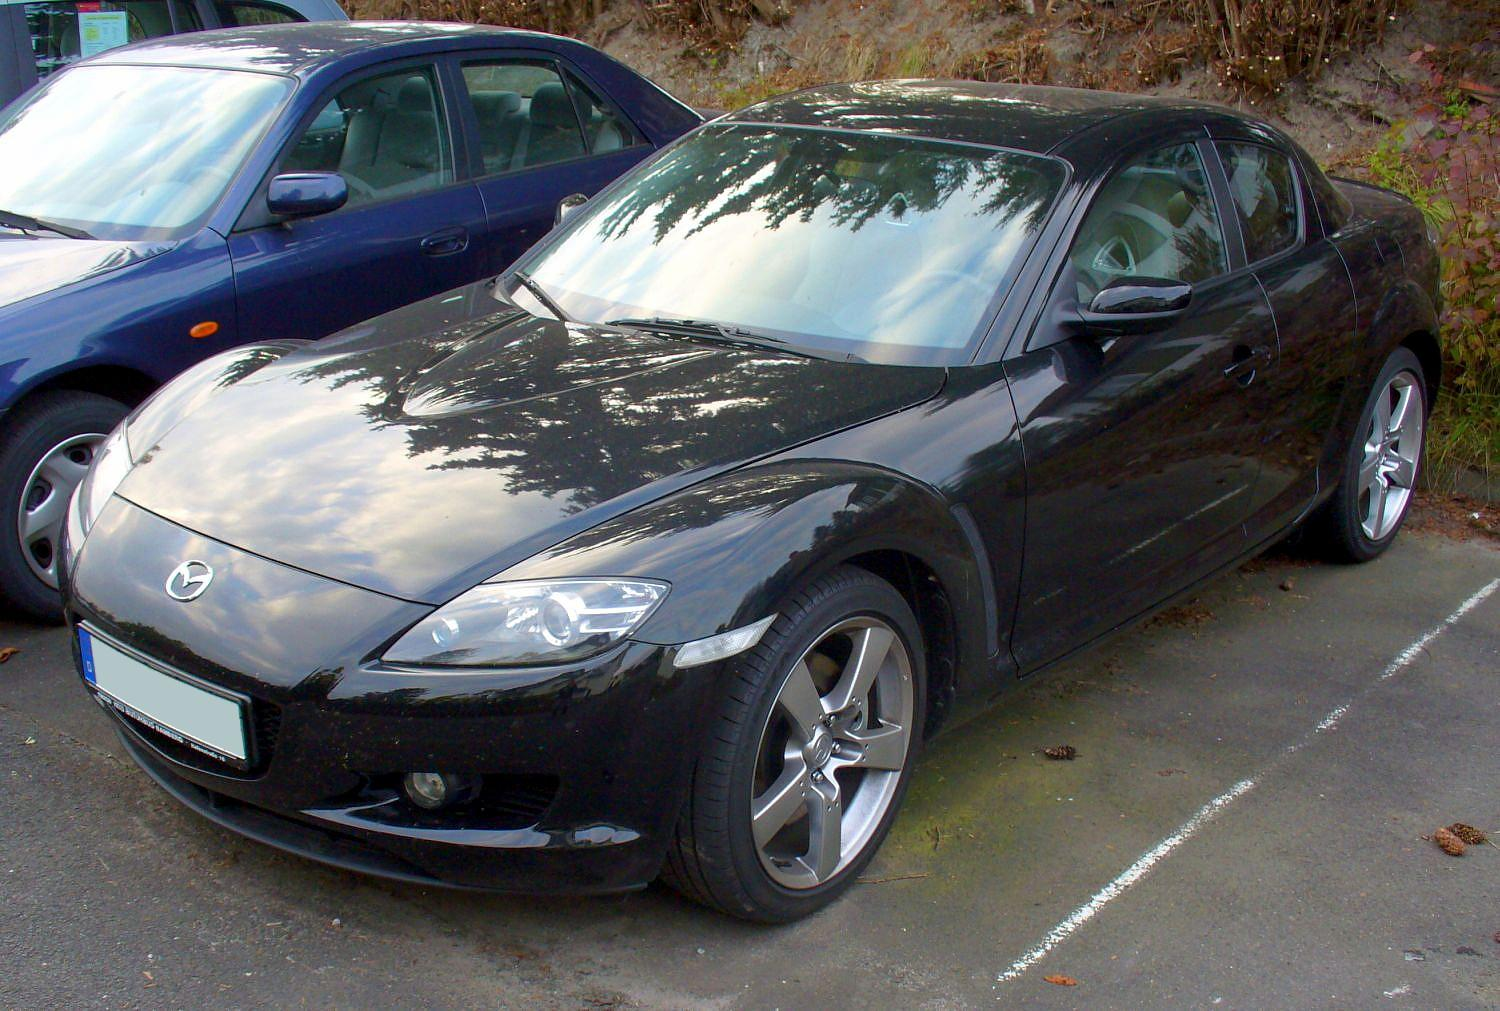 Mazda Rx8 Blacked Out^@# - 230.3KB